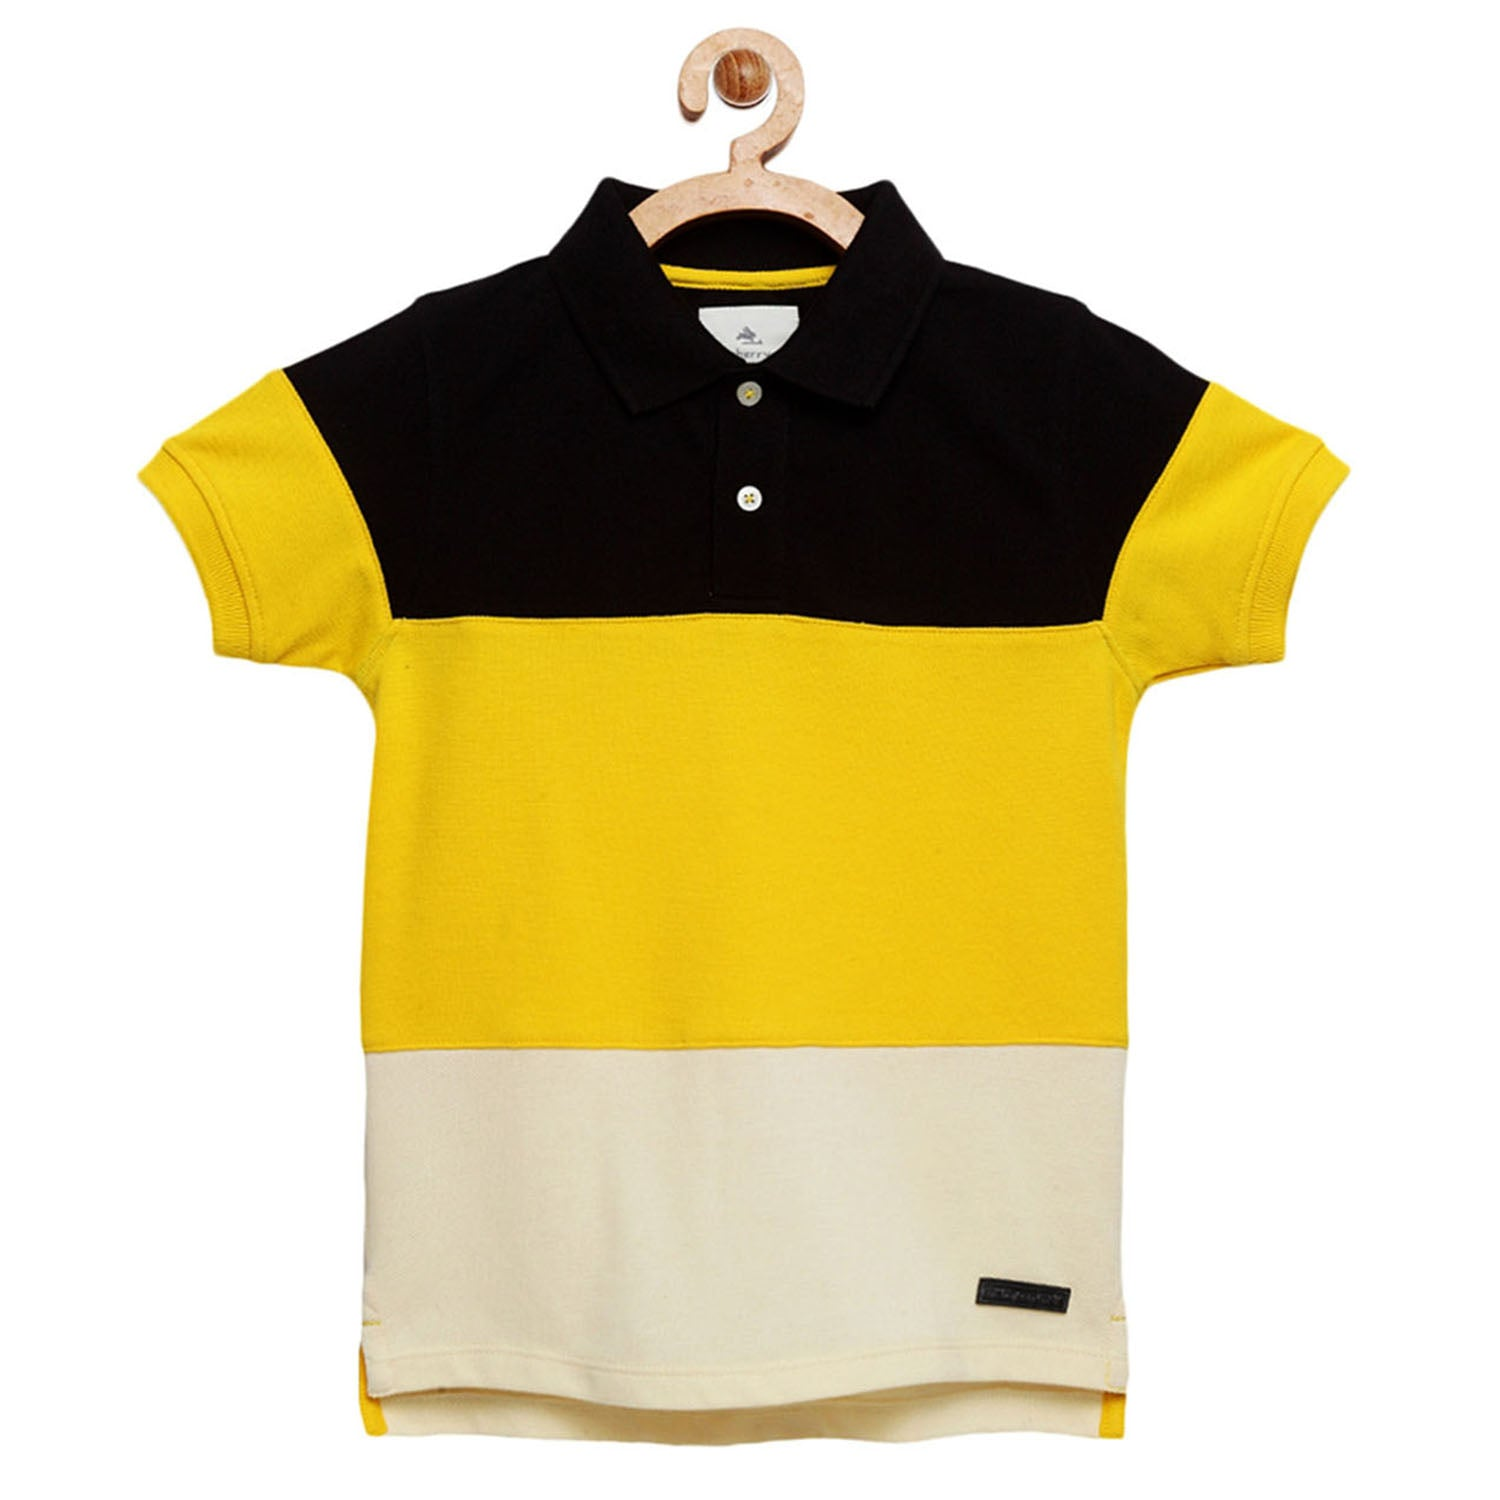 Tricoloured T Shirt for Boys & Girls